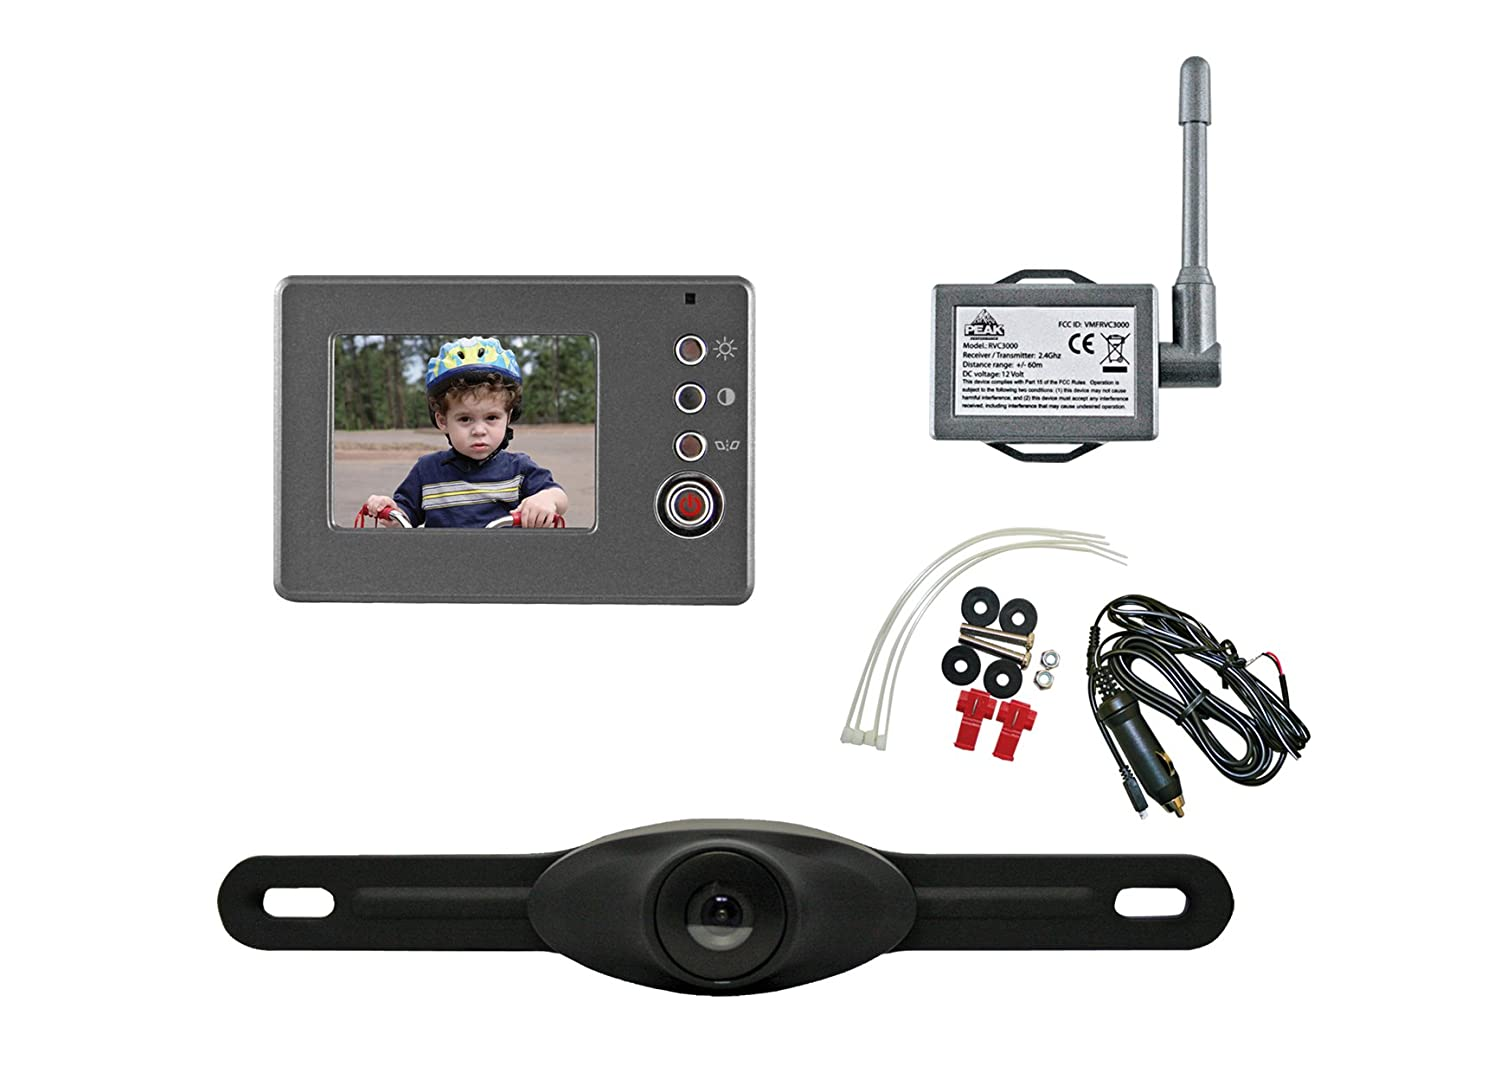 Amazon.com: Peak PKC0RA-01 Wireless Back-Up Camera System With 2.4 ...